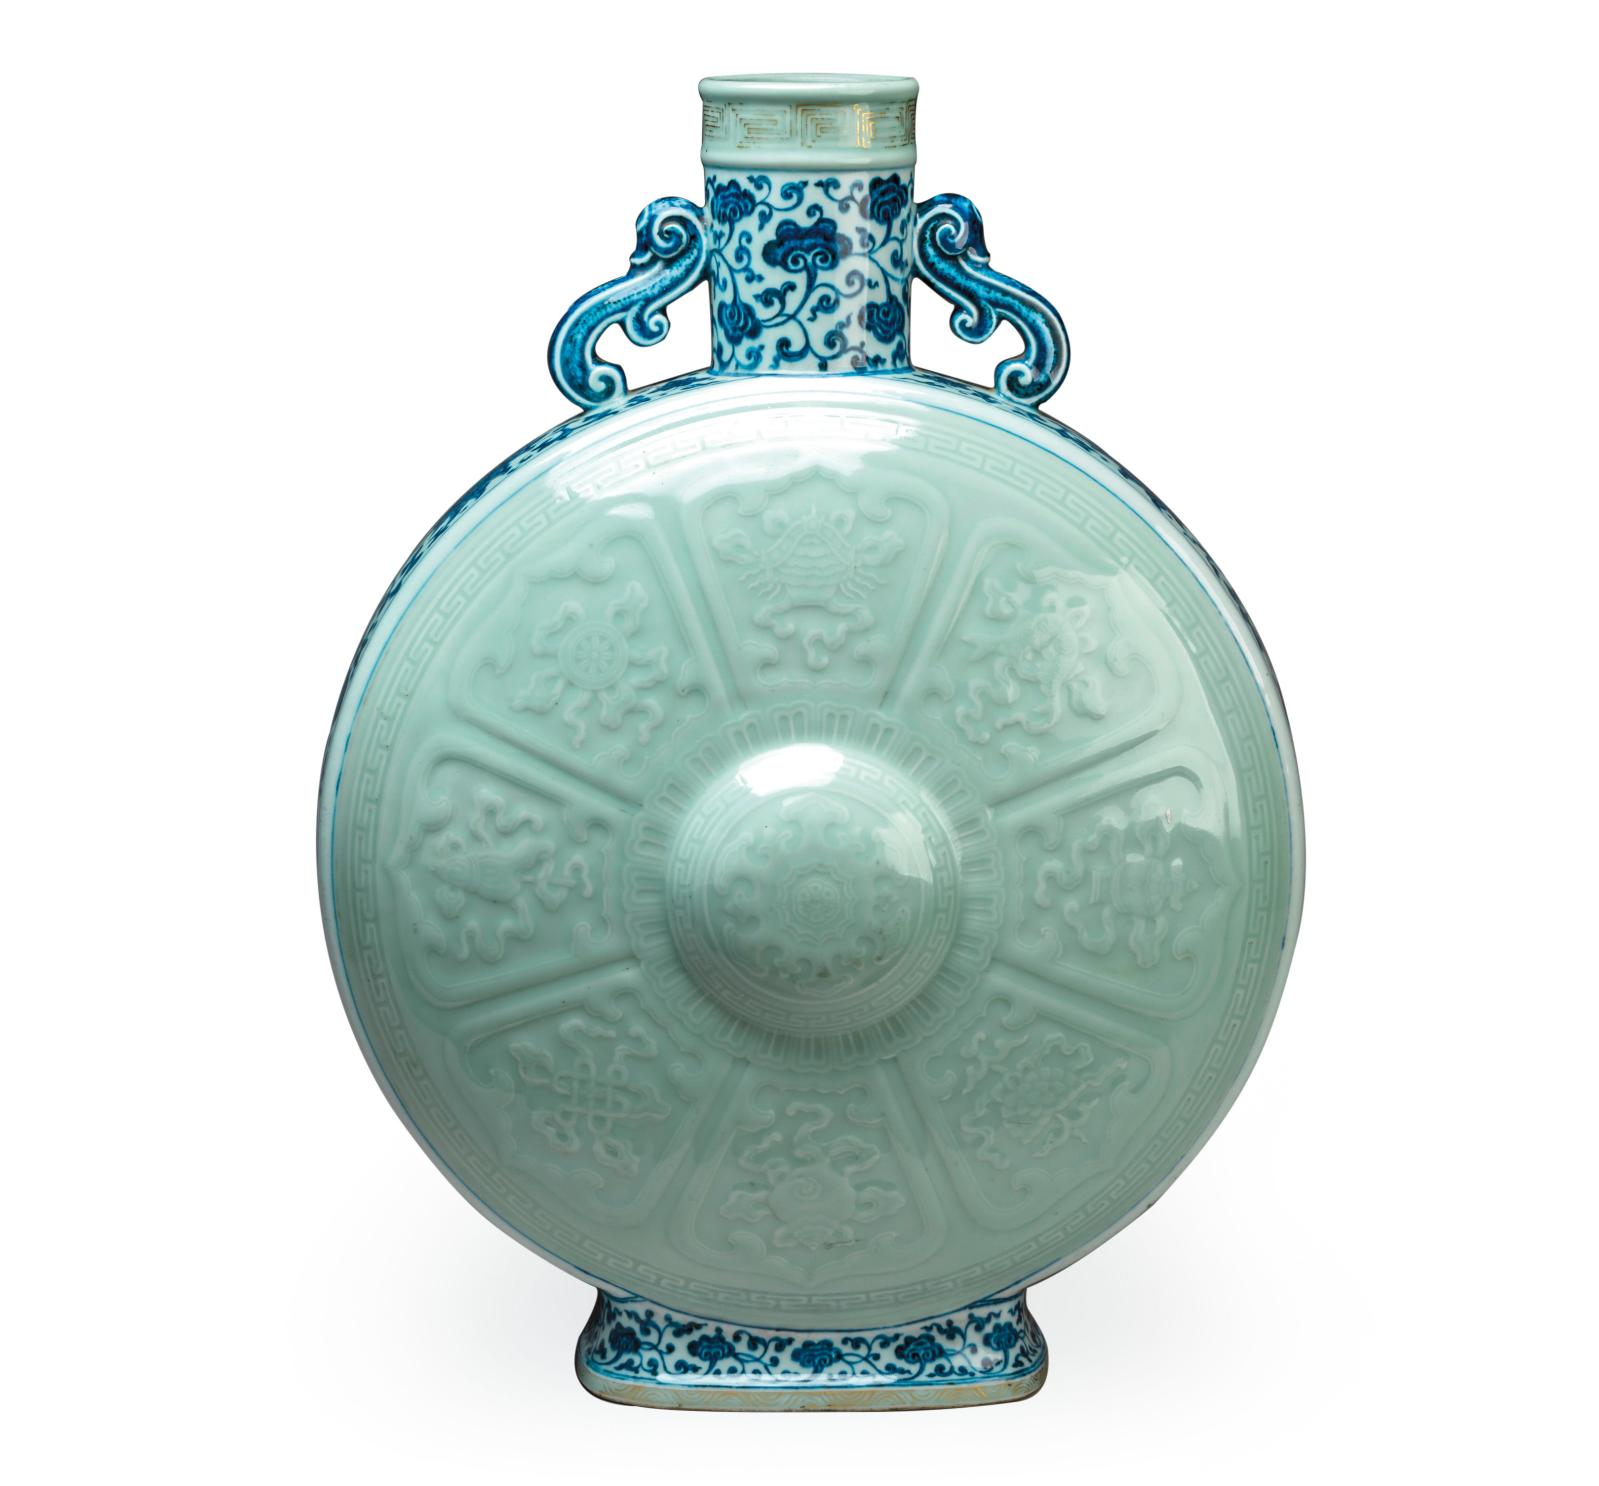 China, Qianlong period (1736-1795), baoyueping gourd in celadon enamelled porcelain on the belly and blue under the glaze on the sides and neck, h. 49